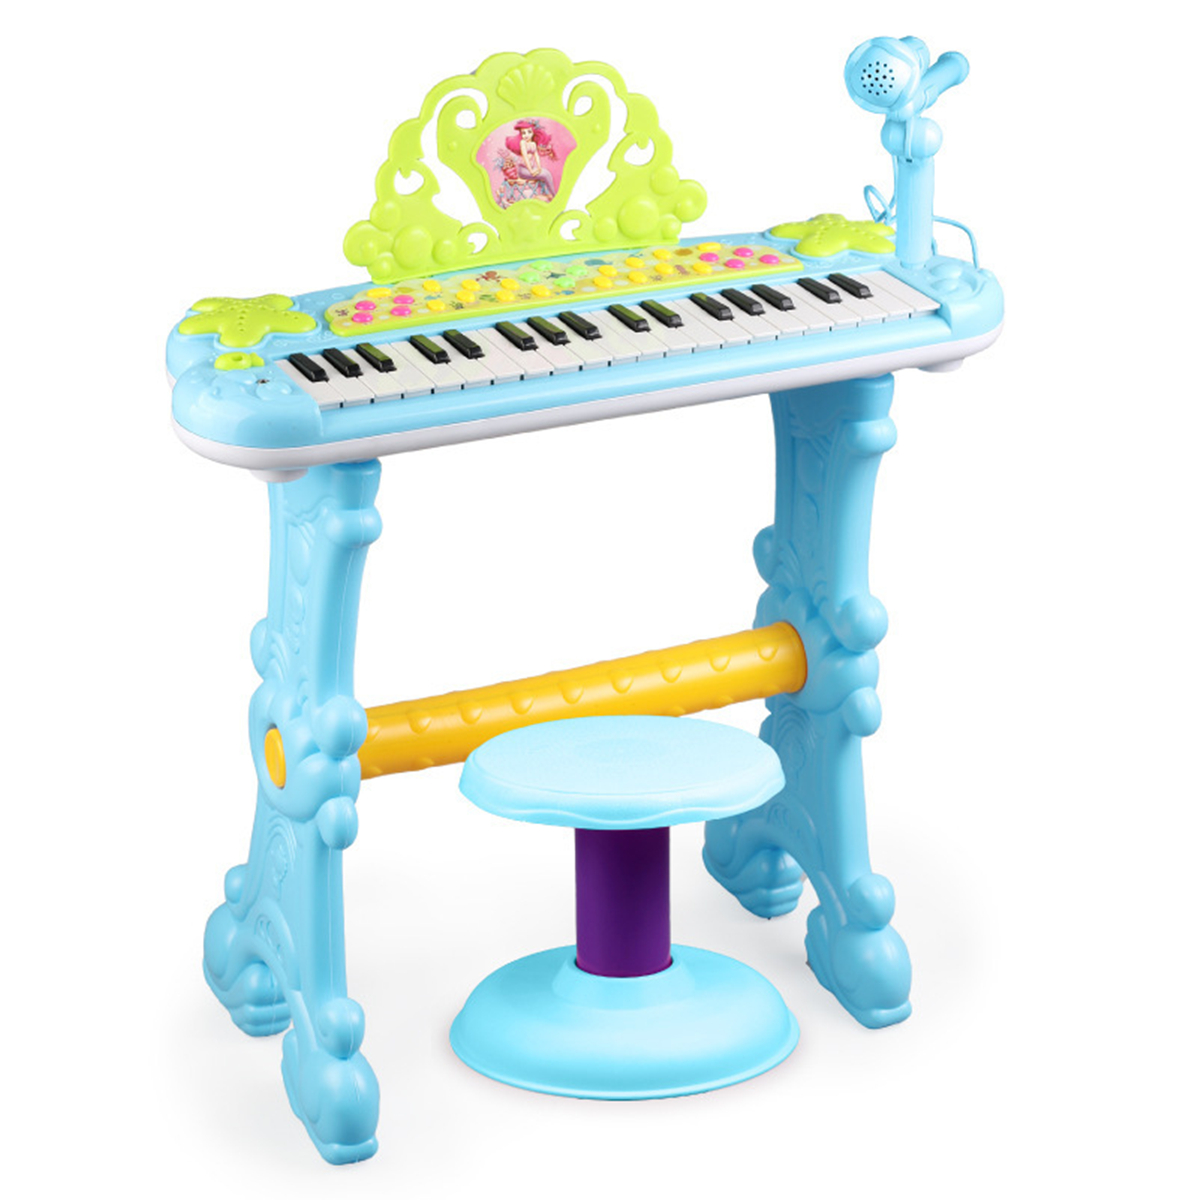 Meigar 37 Key Kids Electronic Keyboard Mini Grand Piano Stool Microphone Musical Toys